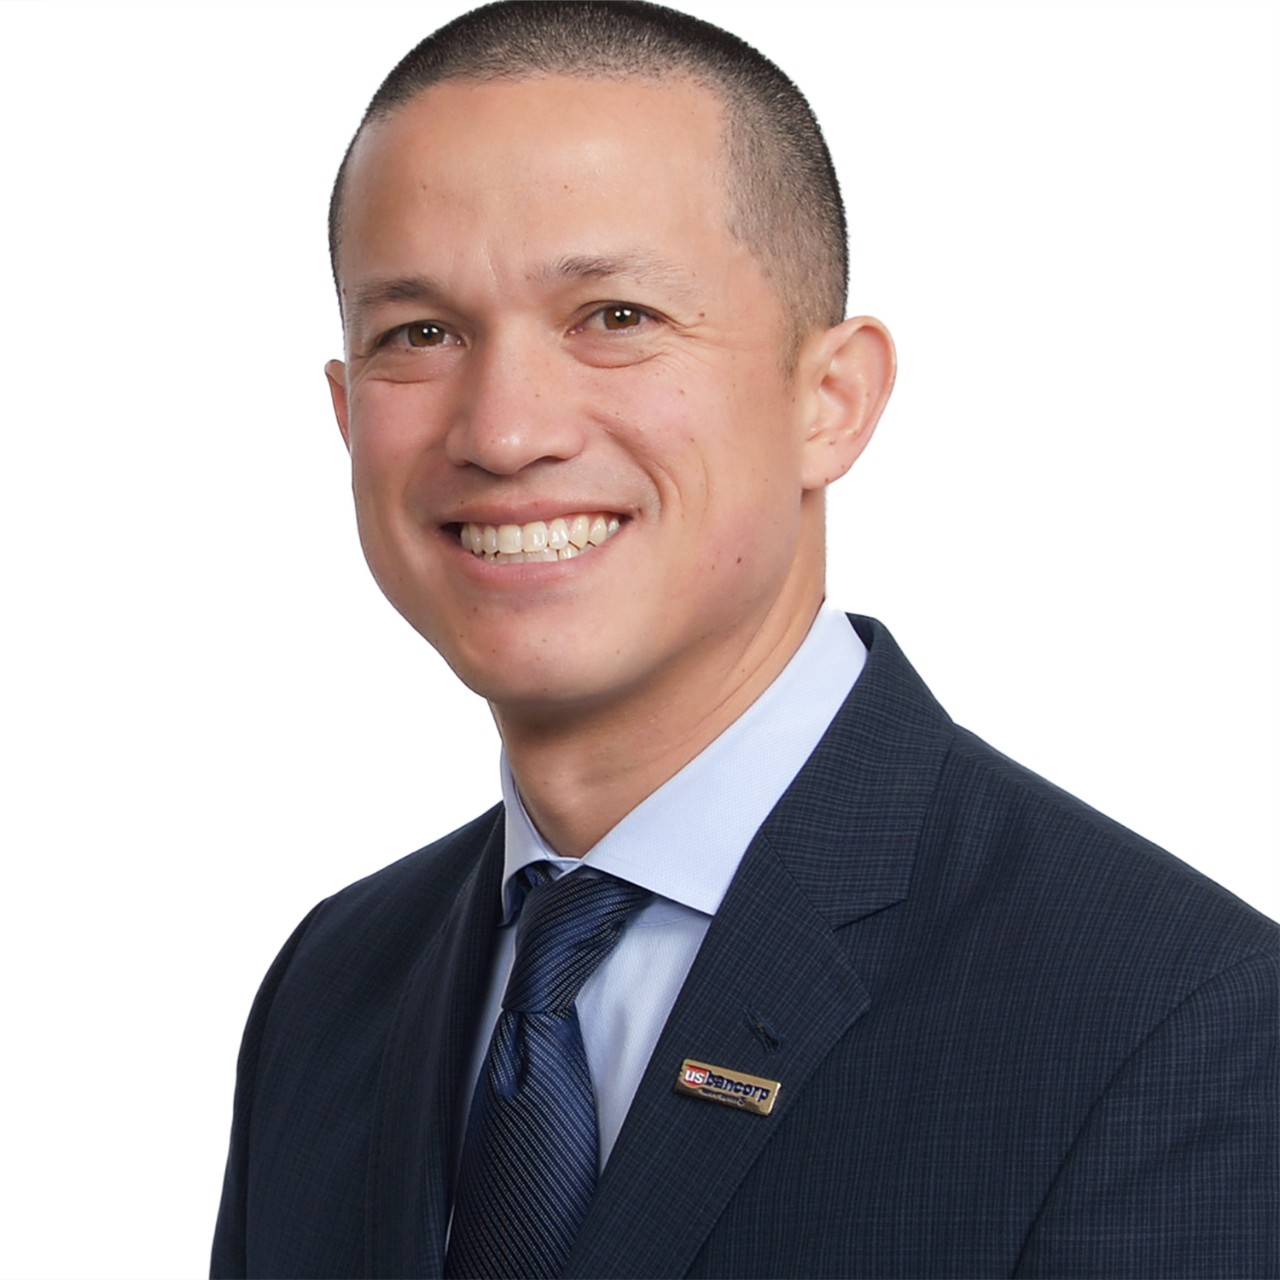 Ira Armad | Financial Advisor | Bellevue, WA | U.S. Bancorp Wealth Management